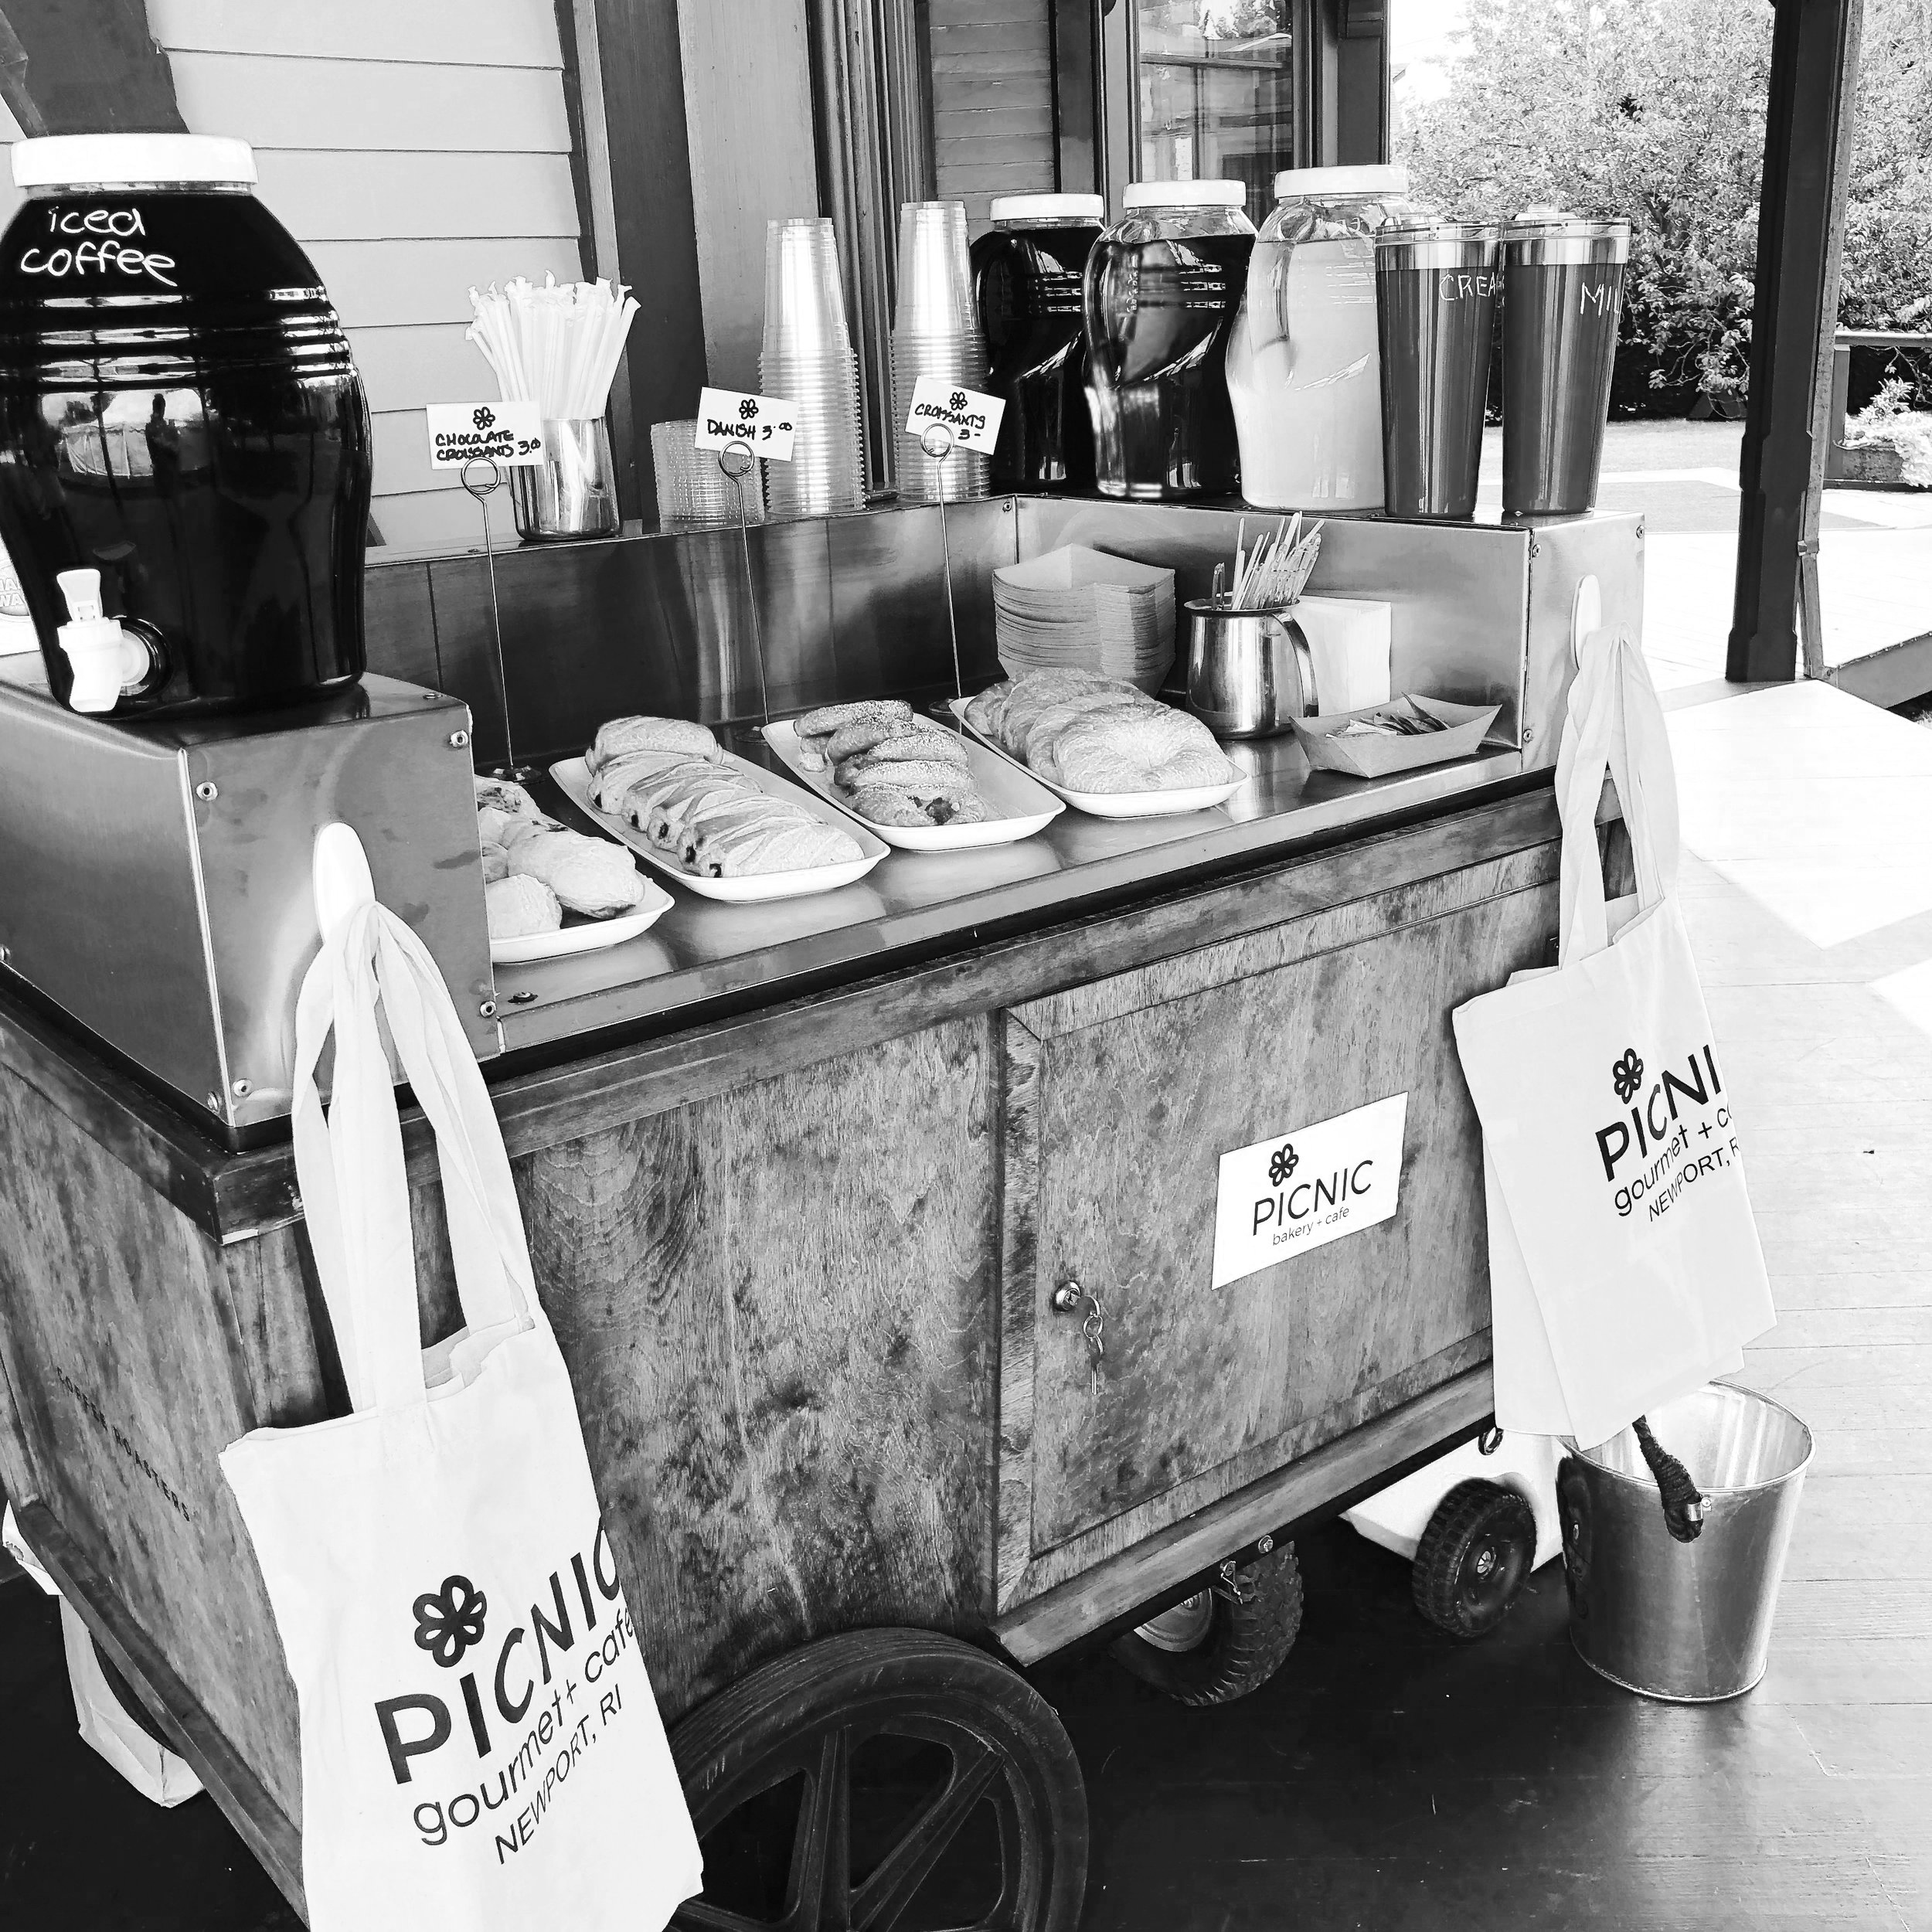 Our Food Cart - This little guy is an event favorite! Our food cart is a catering cart that we have outfitted to best serve as a food and drink station for on-site events. Stylish, charming and always a crowd pleaser.